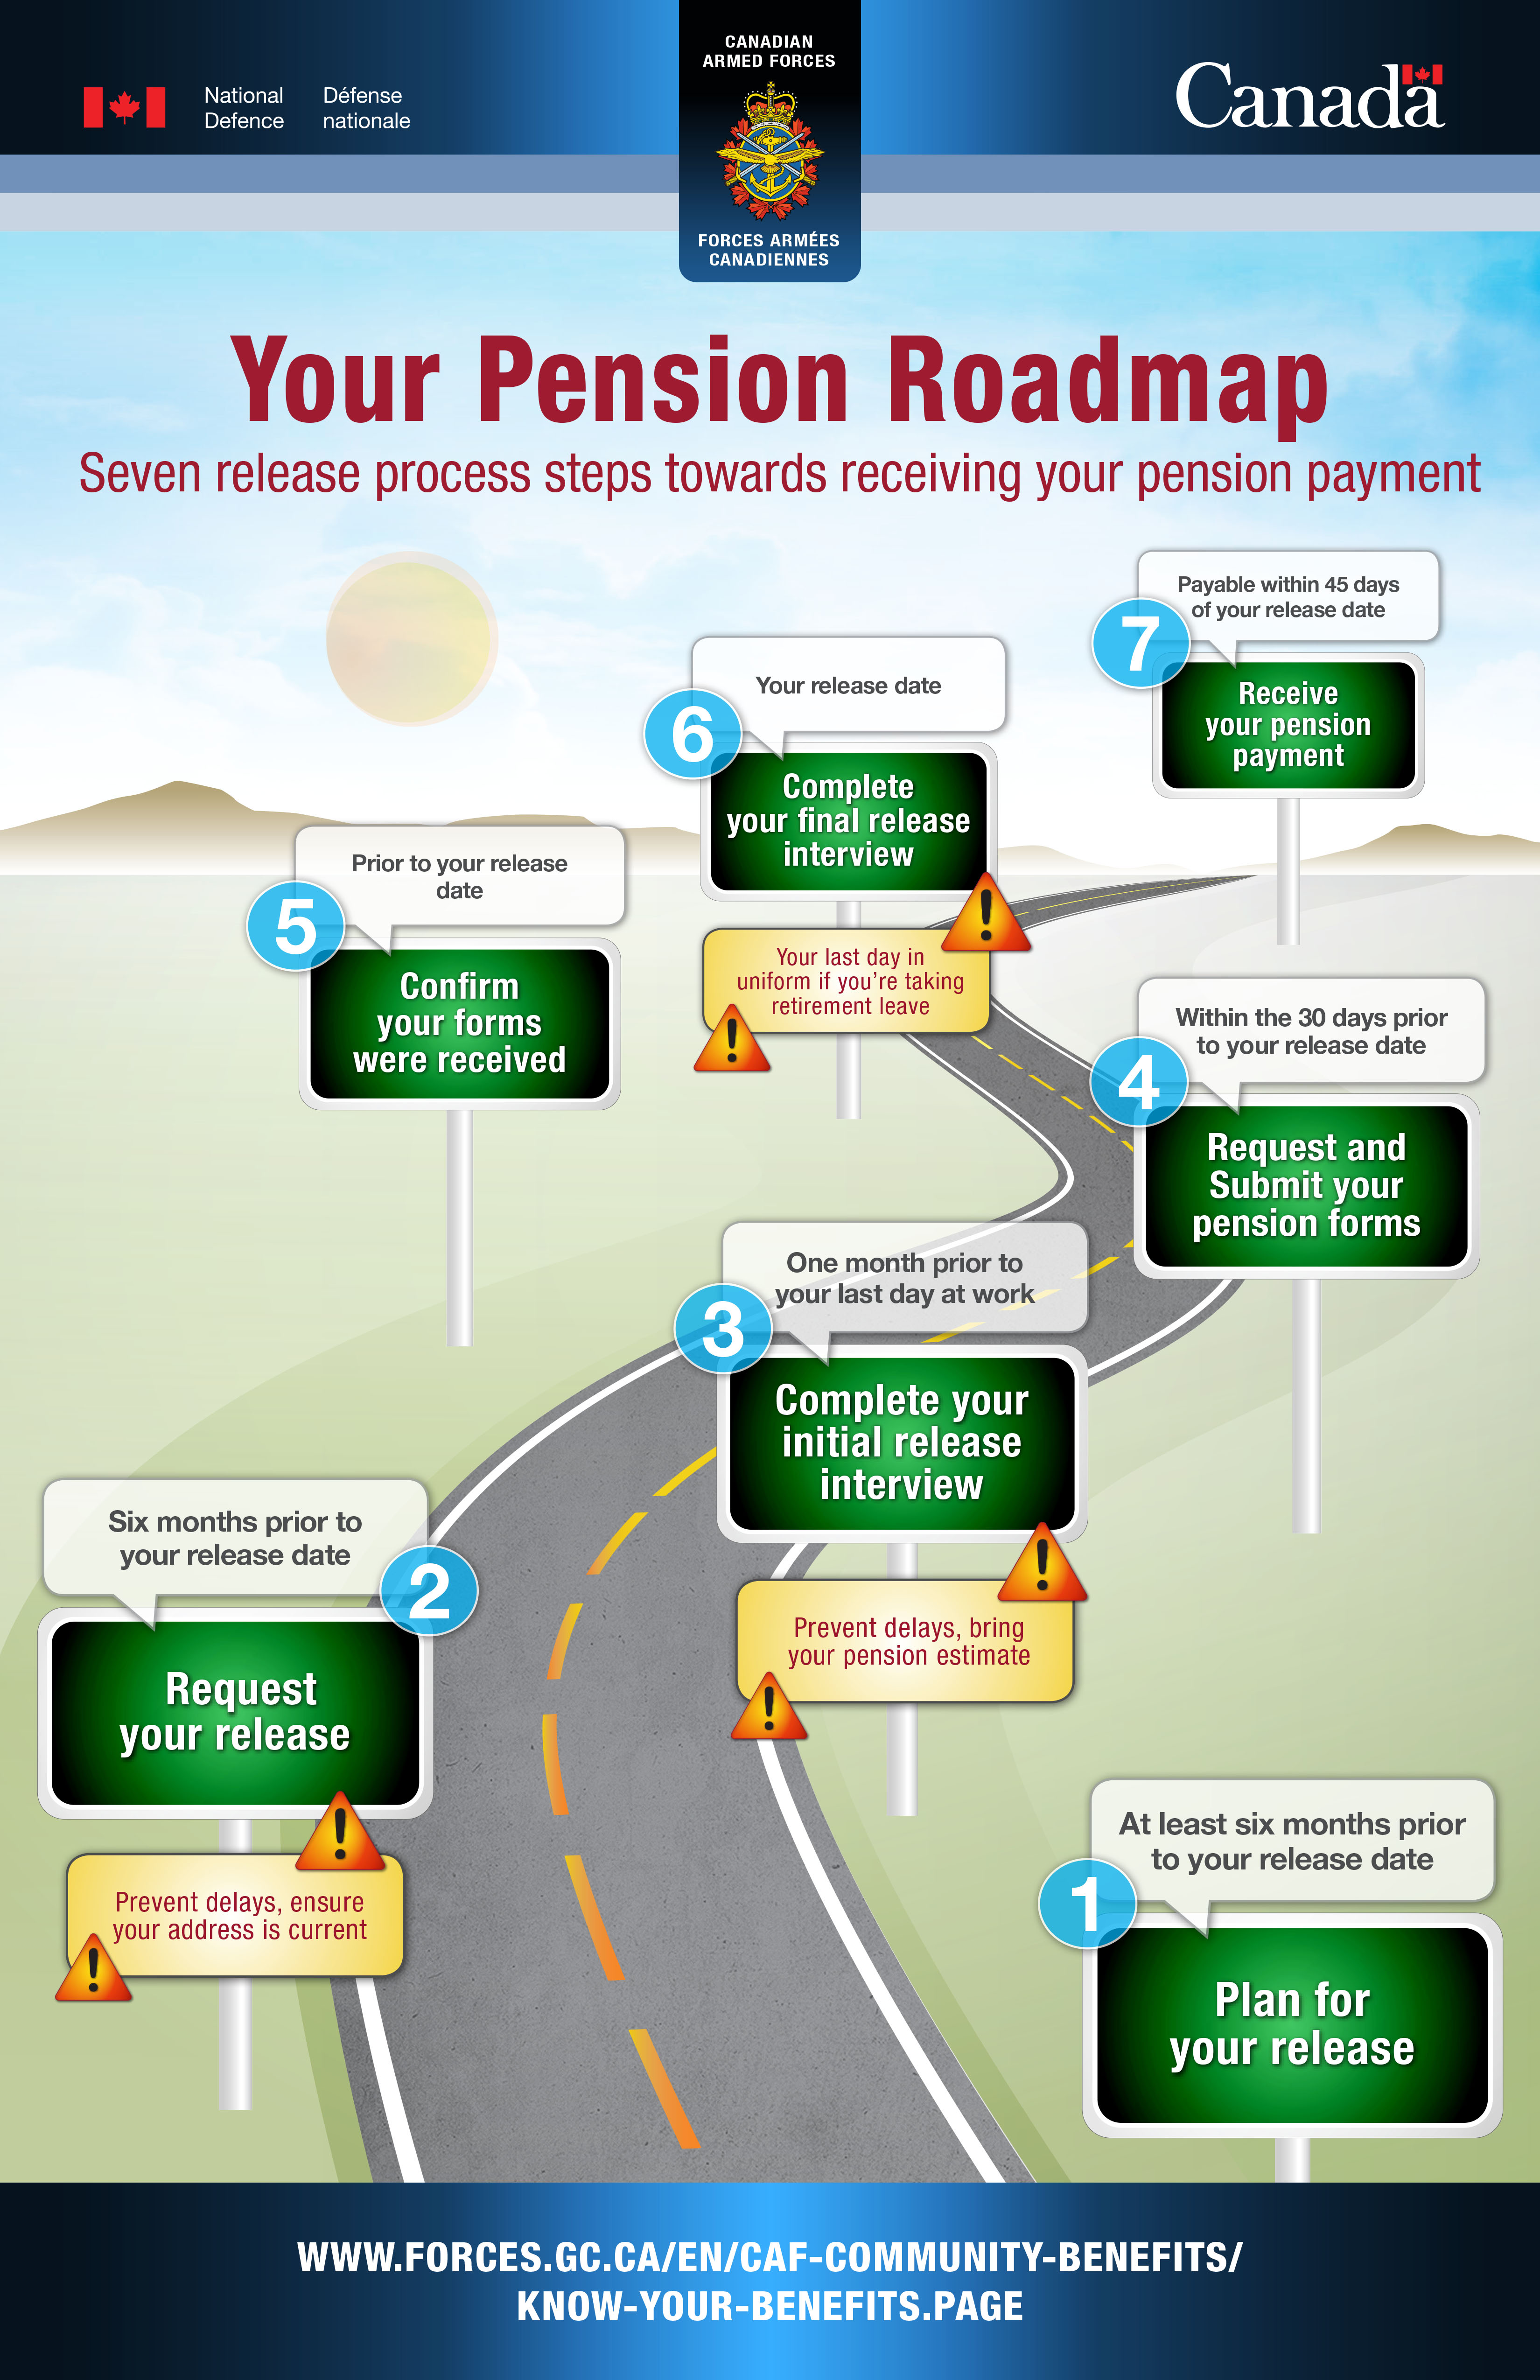 Your Pension Roadmap